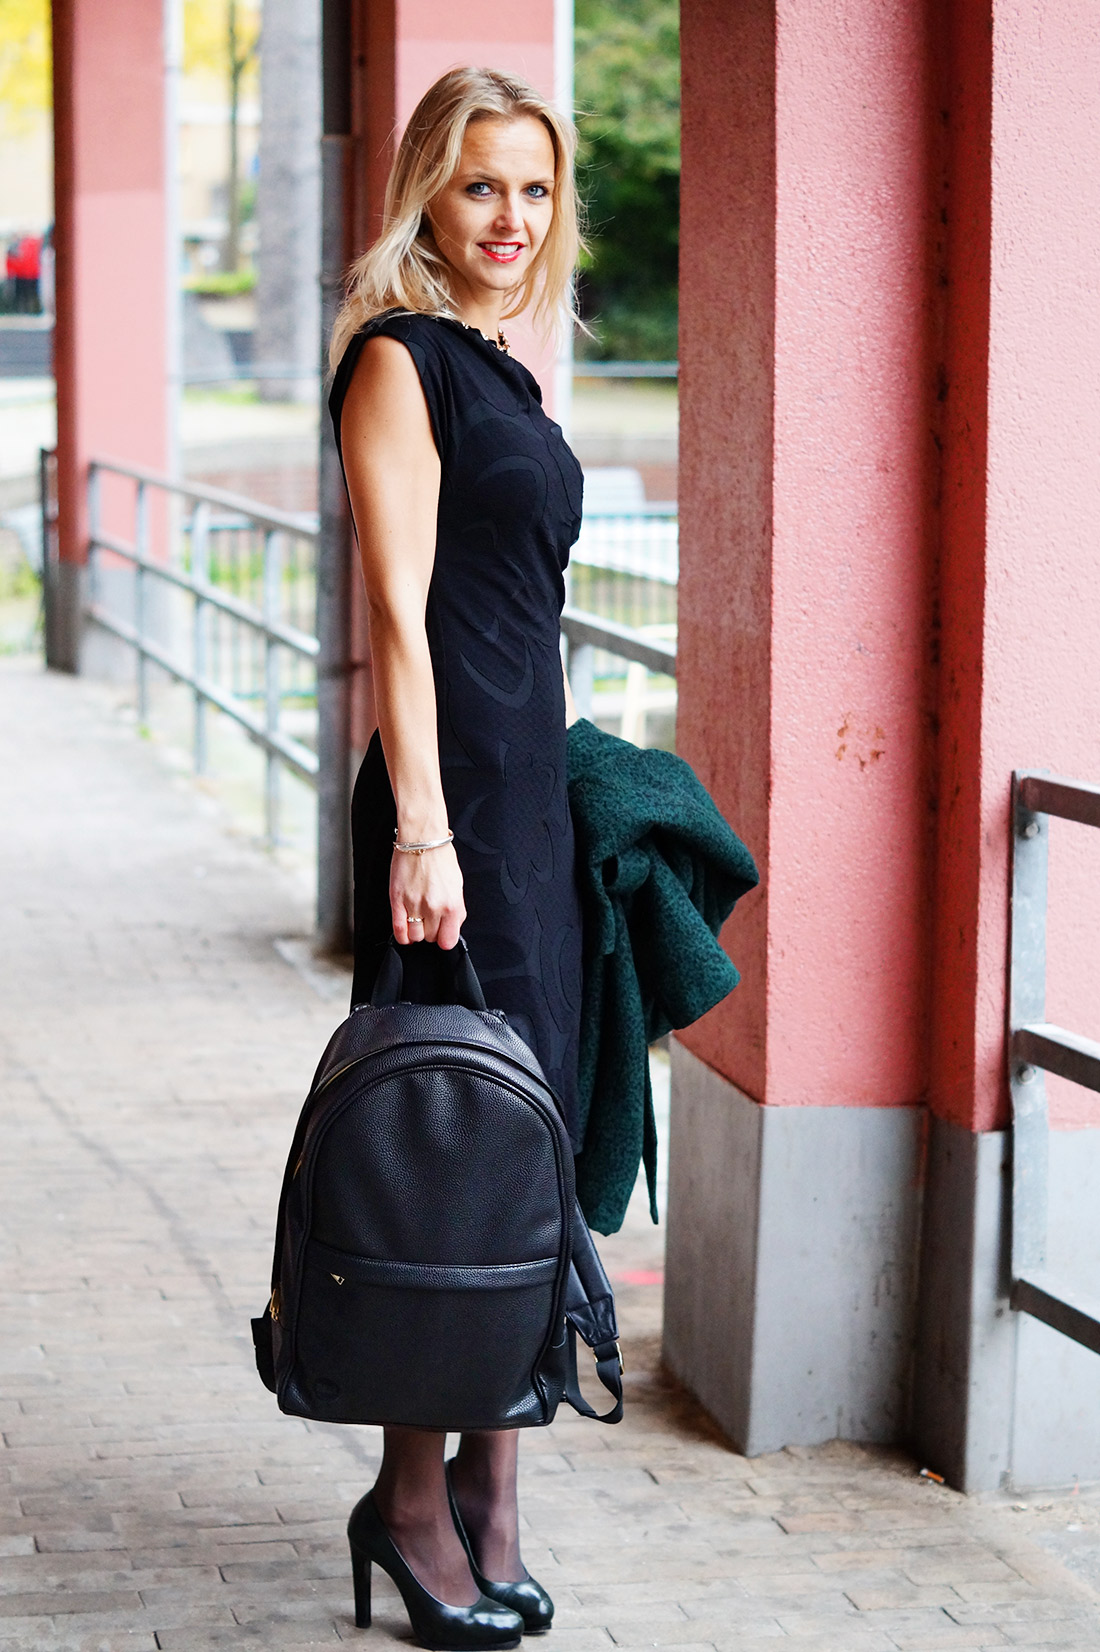 Bag-at-You---Fashion-blog---Mi-Pac-Backpack-Maxwell-Black---Black-Dress---Autumn-in-Amsterdam